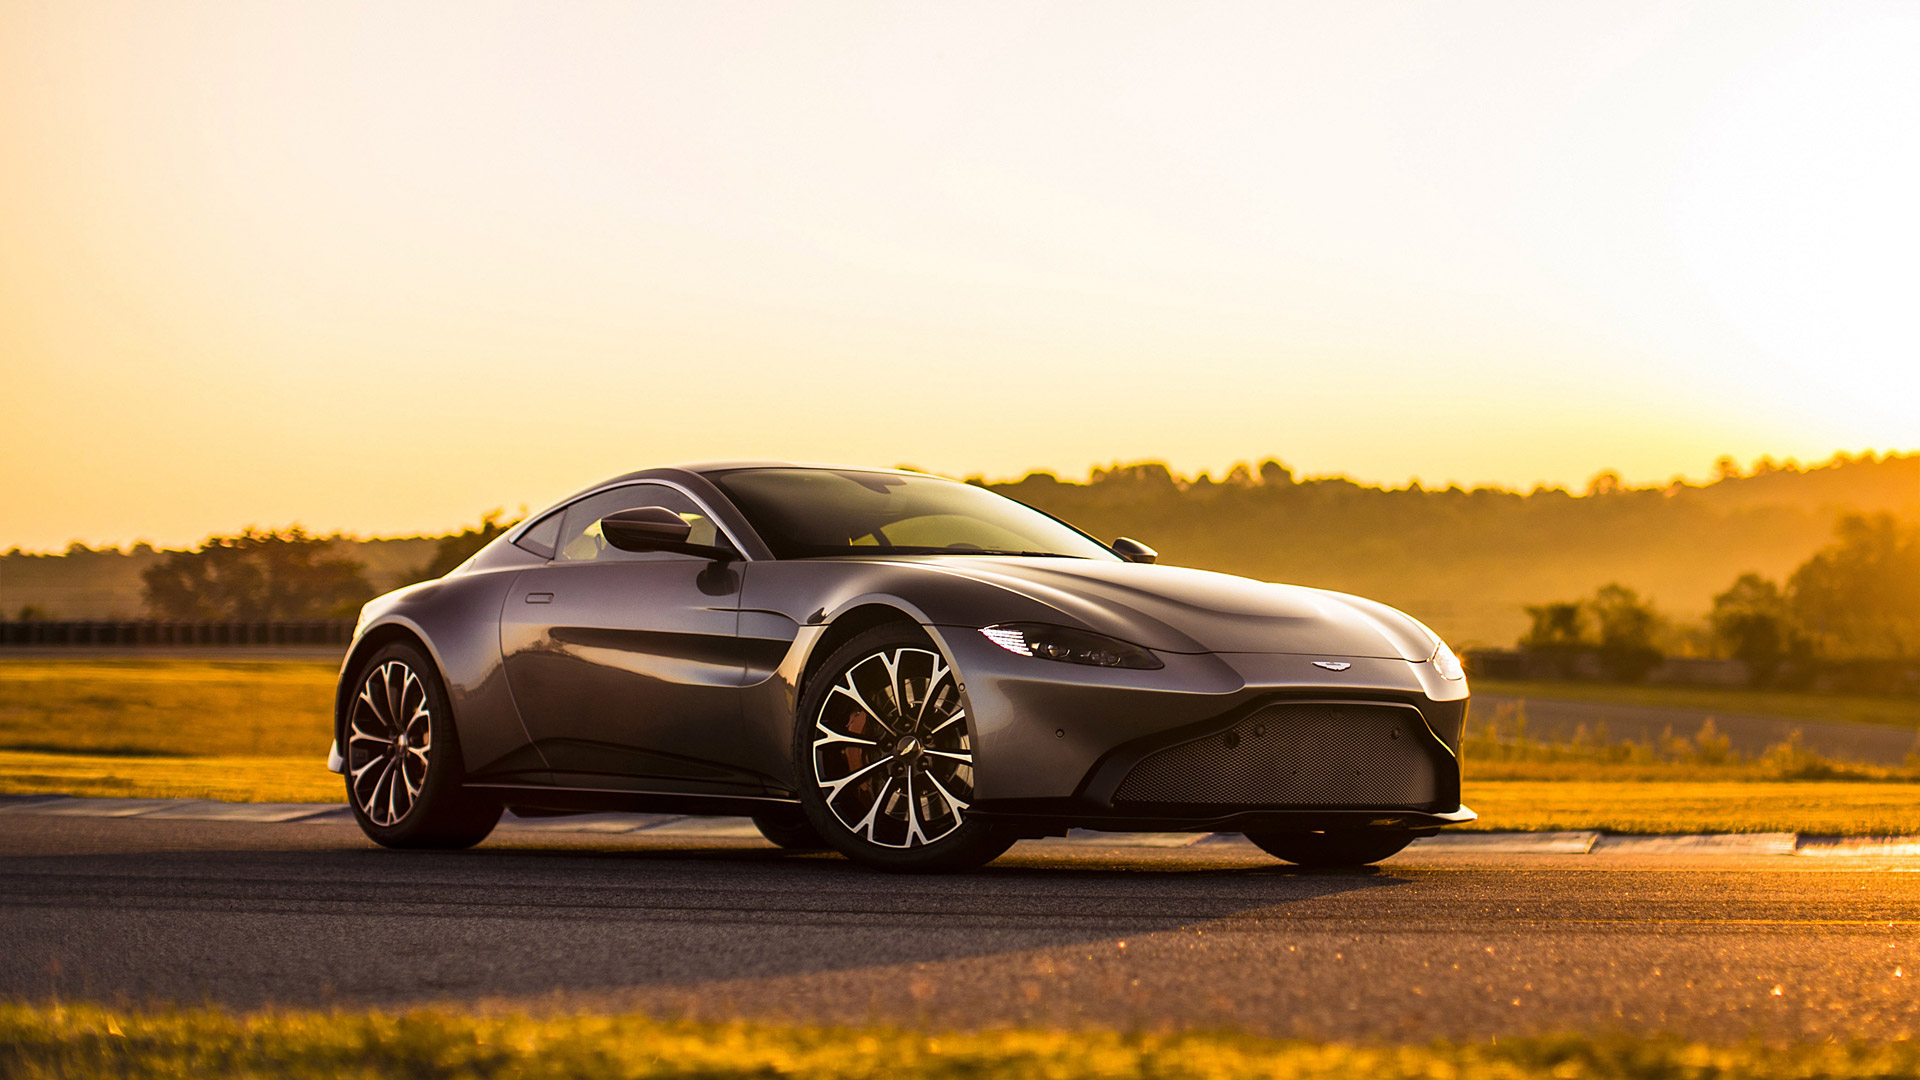 2019 Aston Martin Vantage Wallpapers HD Images   WSupercars 1920x1080